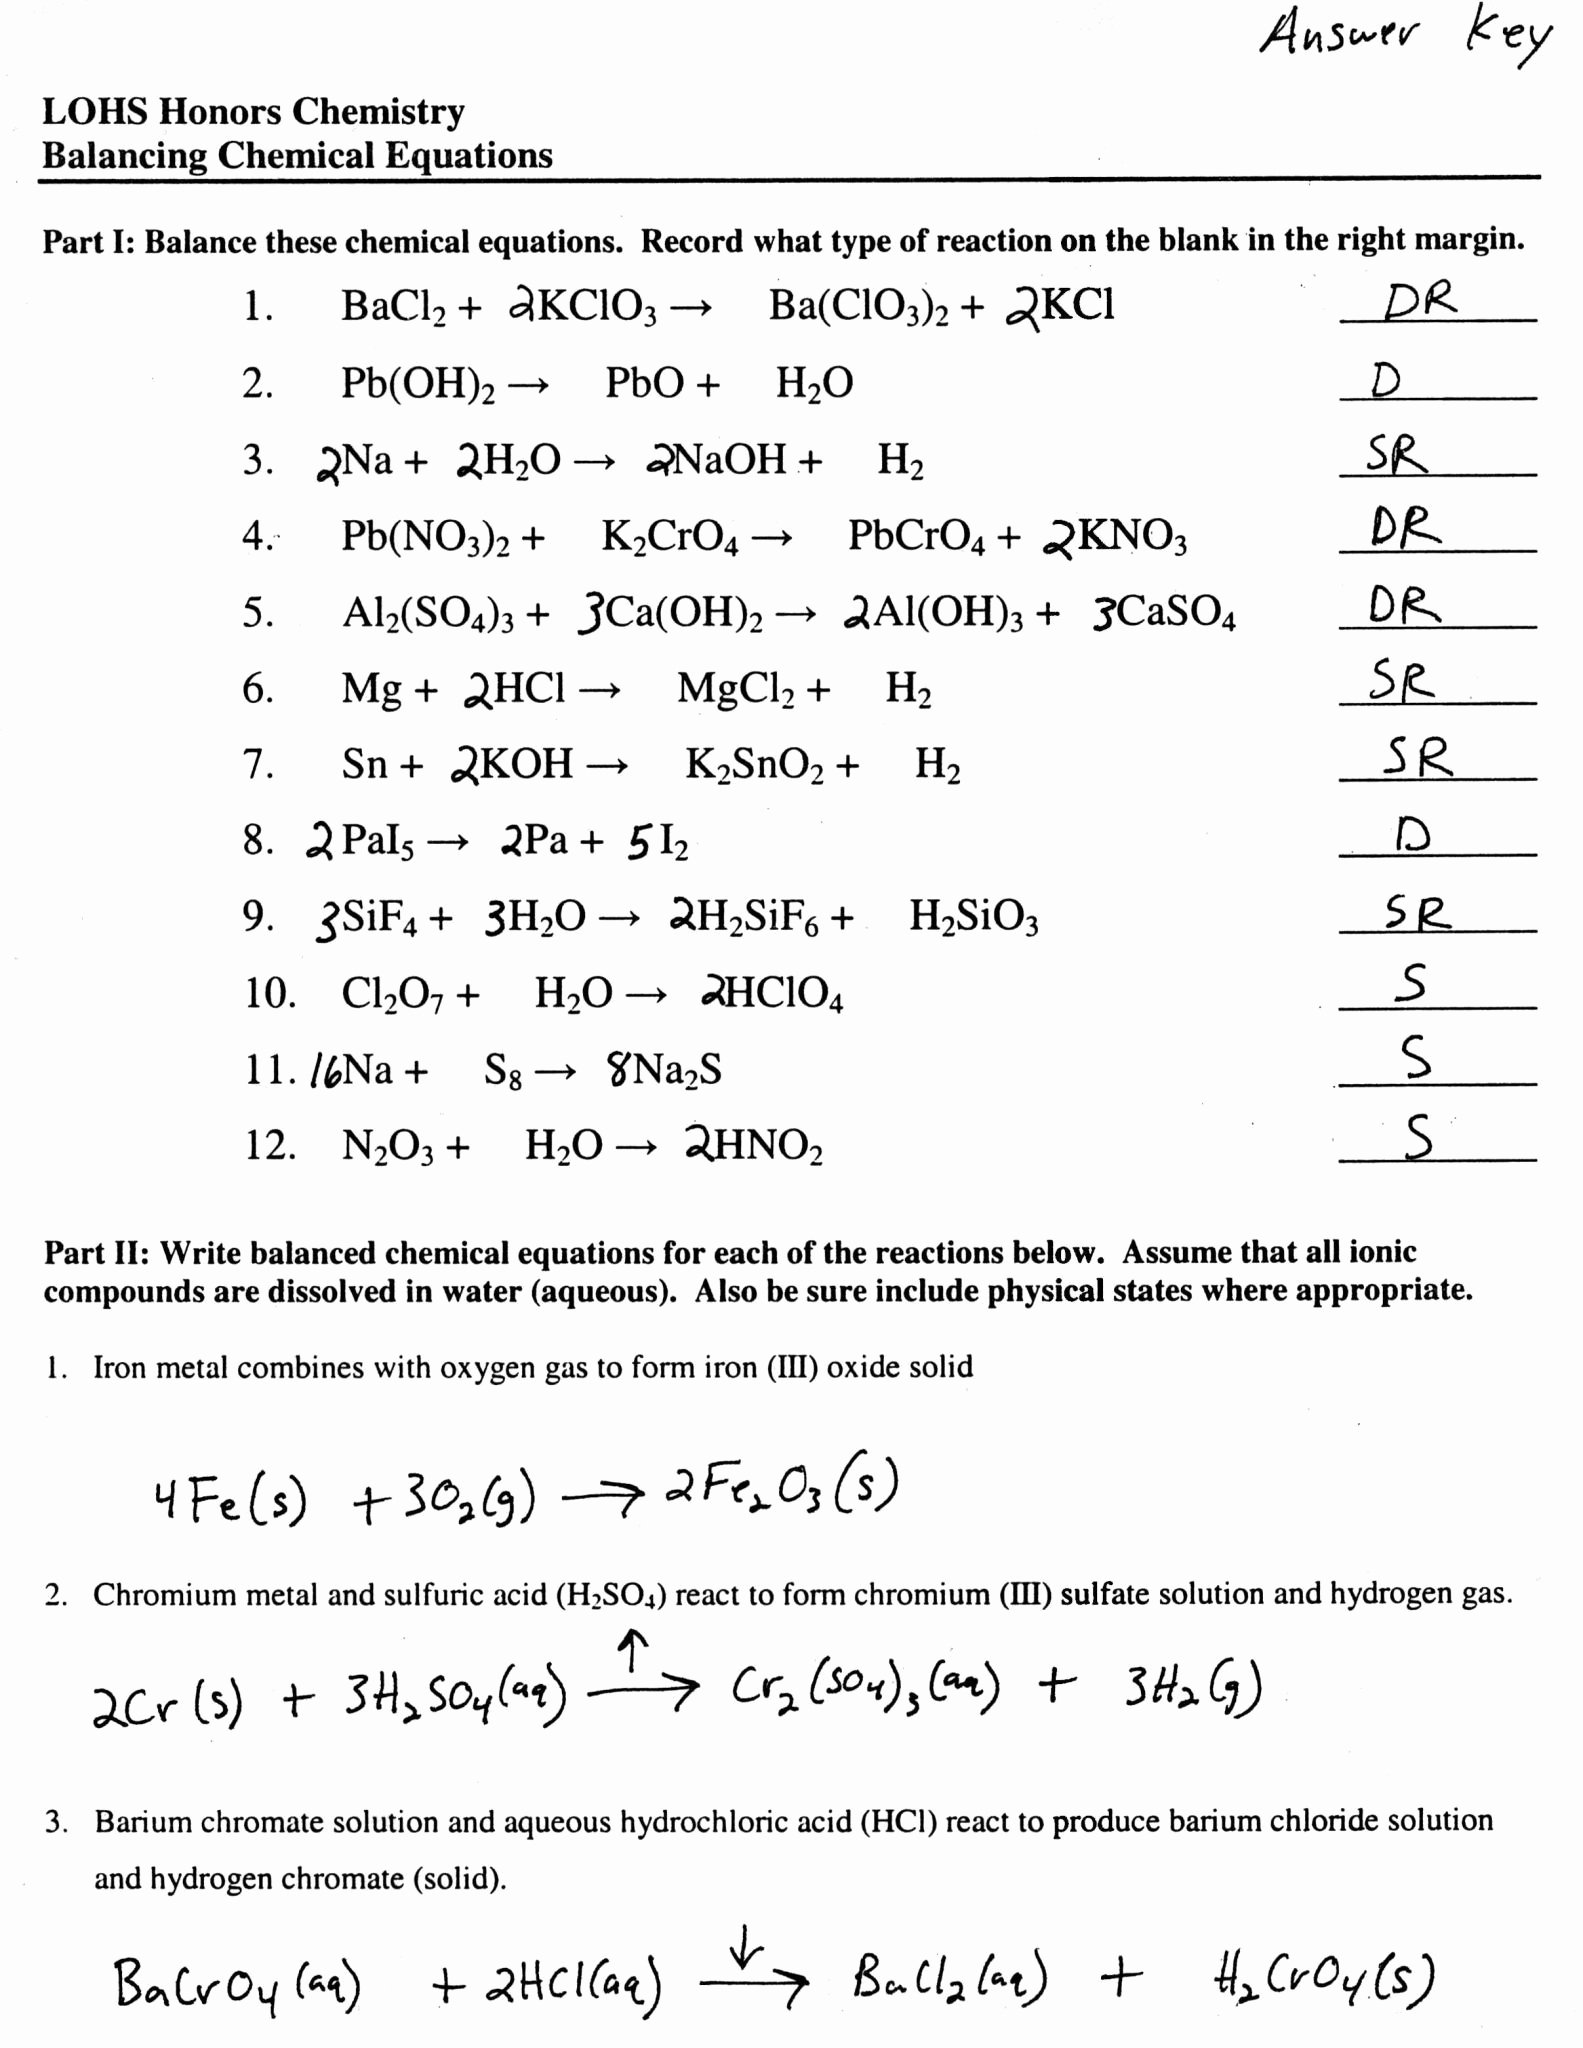 Balancing Nuclear Equations Worksheet Answers Awesome Nuclear Decay Inquiry Worksheet